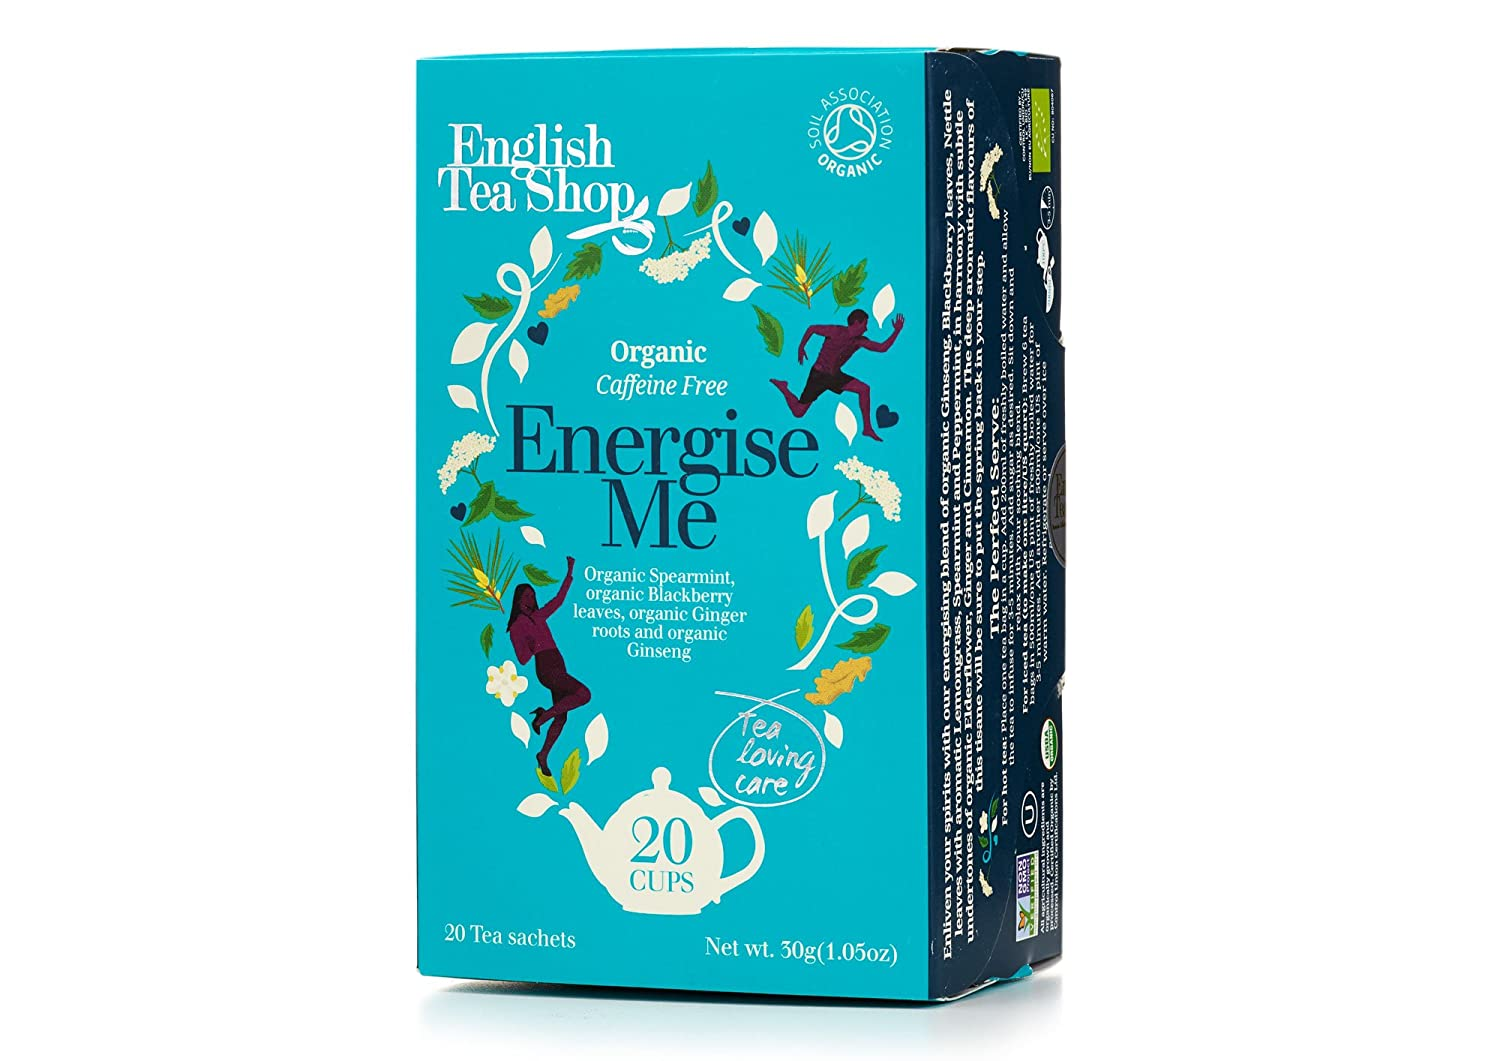 English Tea Shop Organic Energize Me - 20 Paper Tea bag sachets